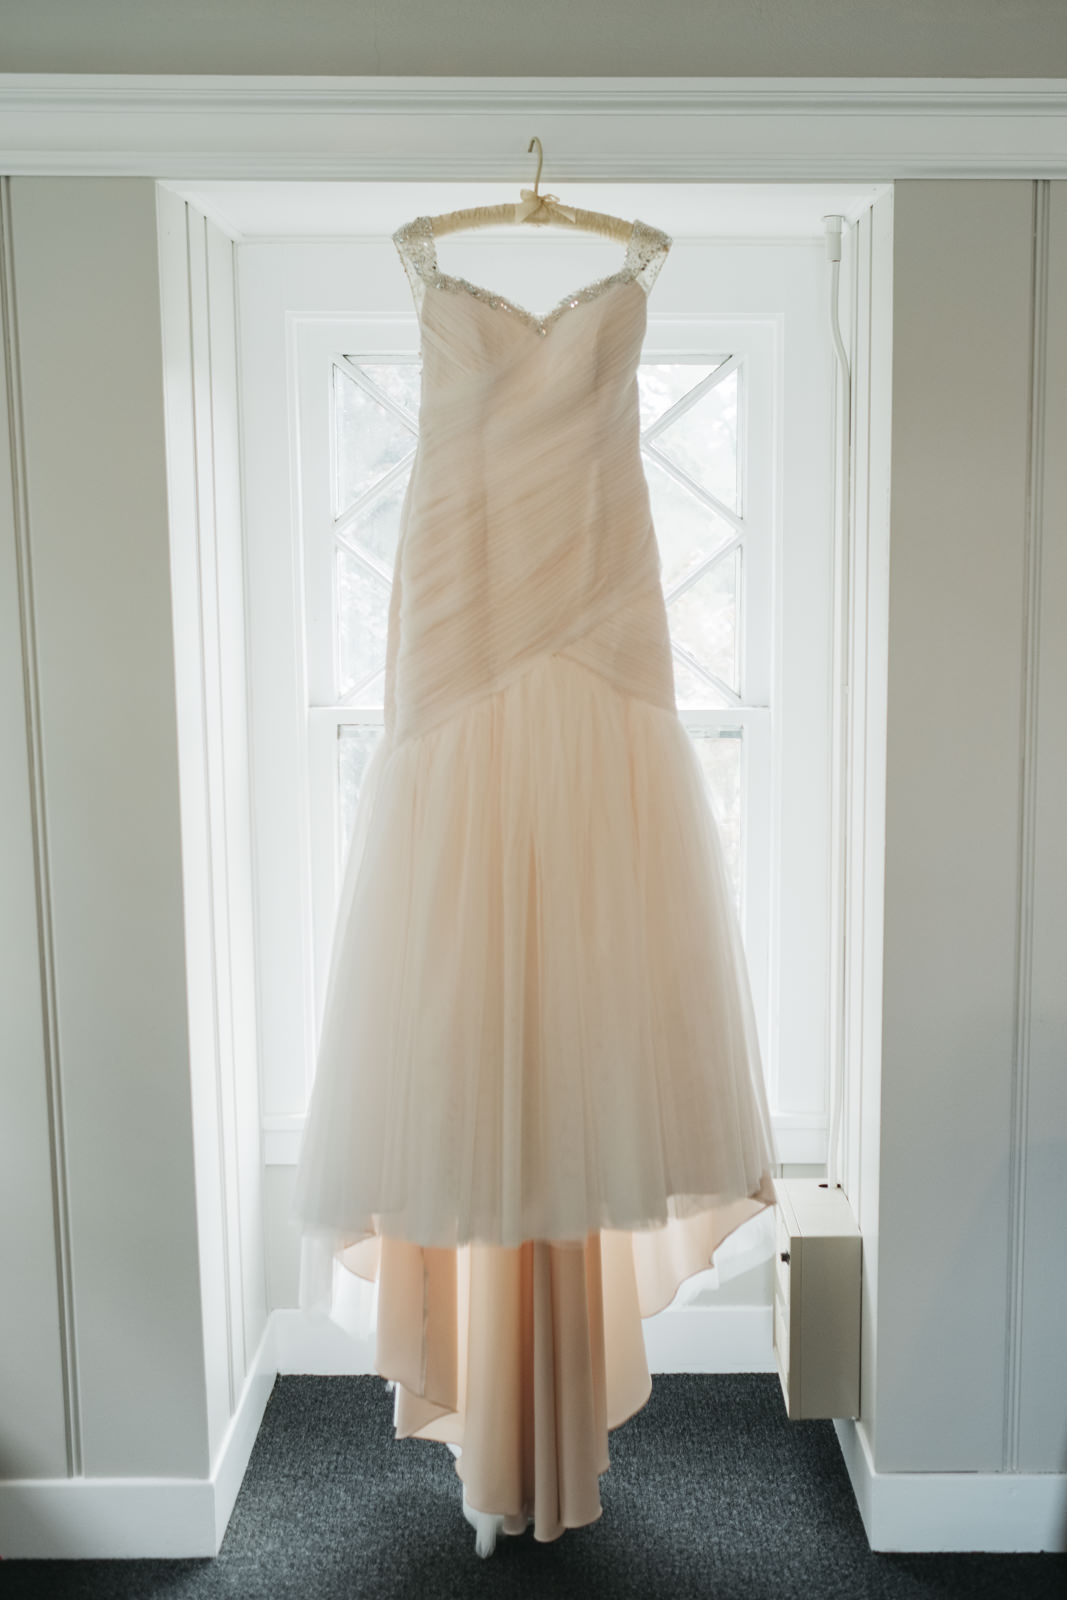 The bride's dress hanging in a doorway